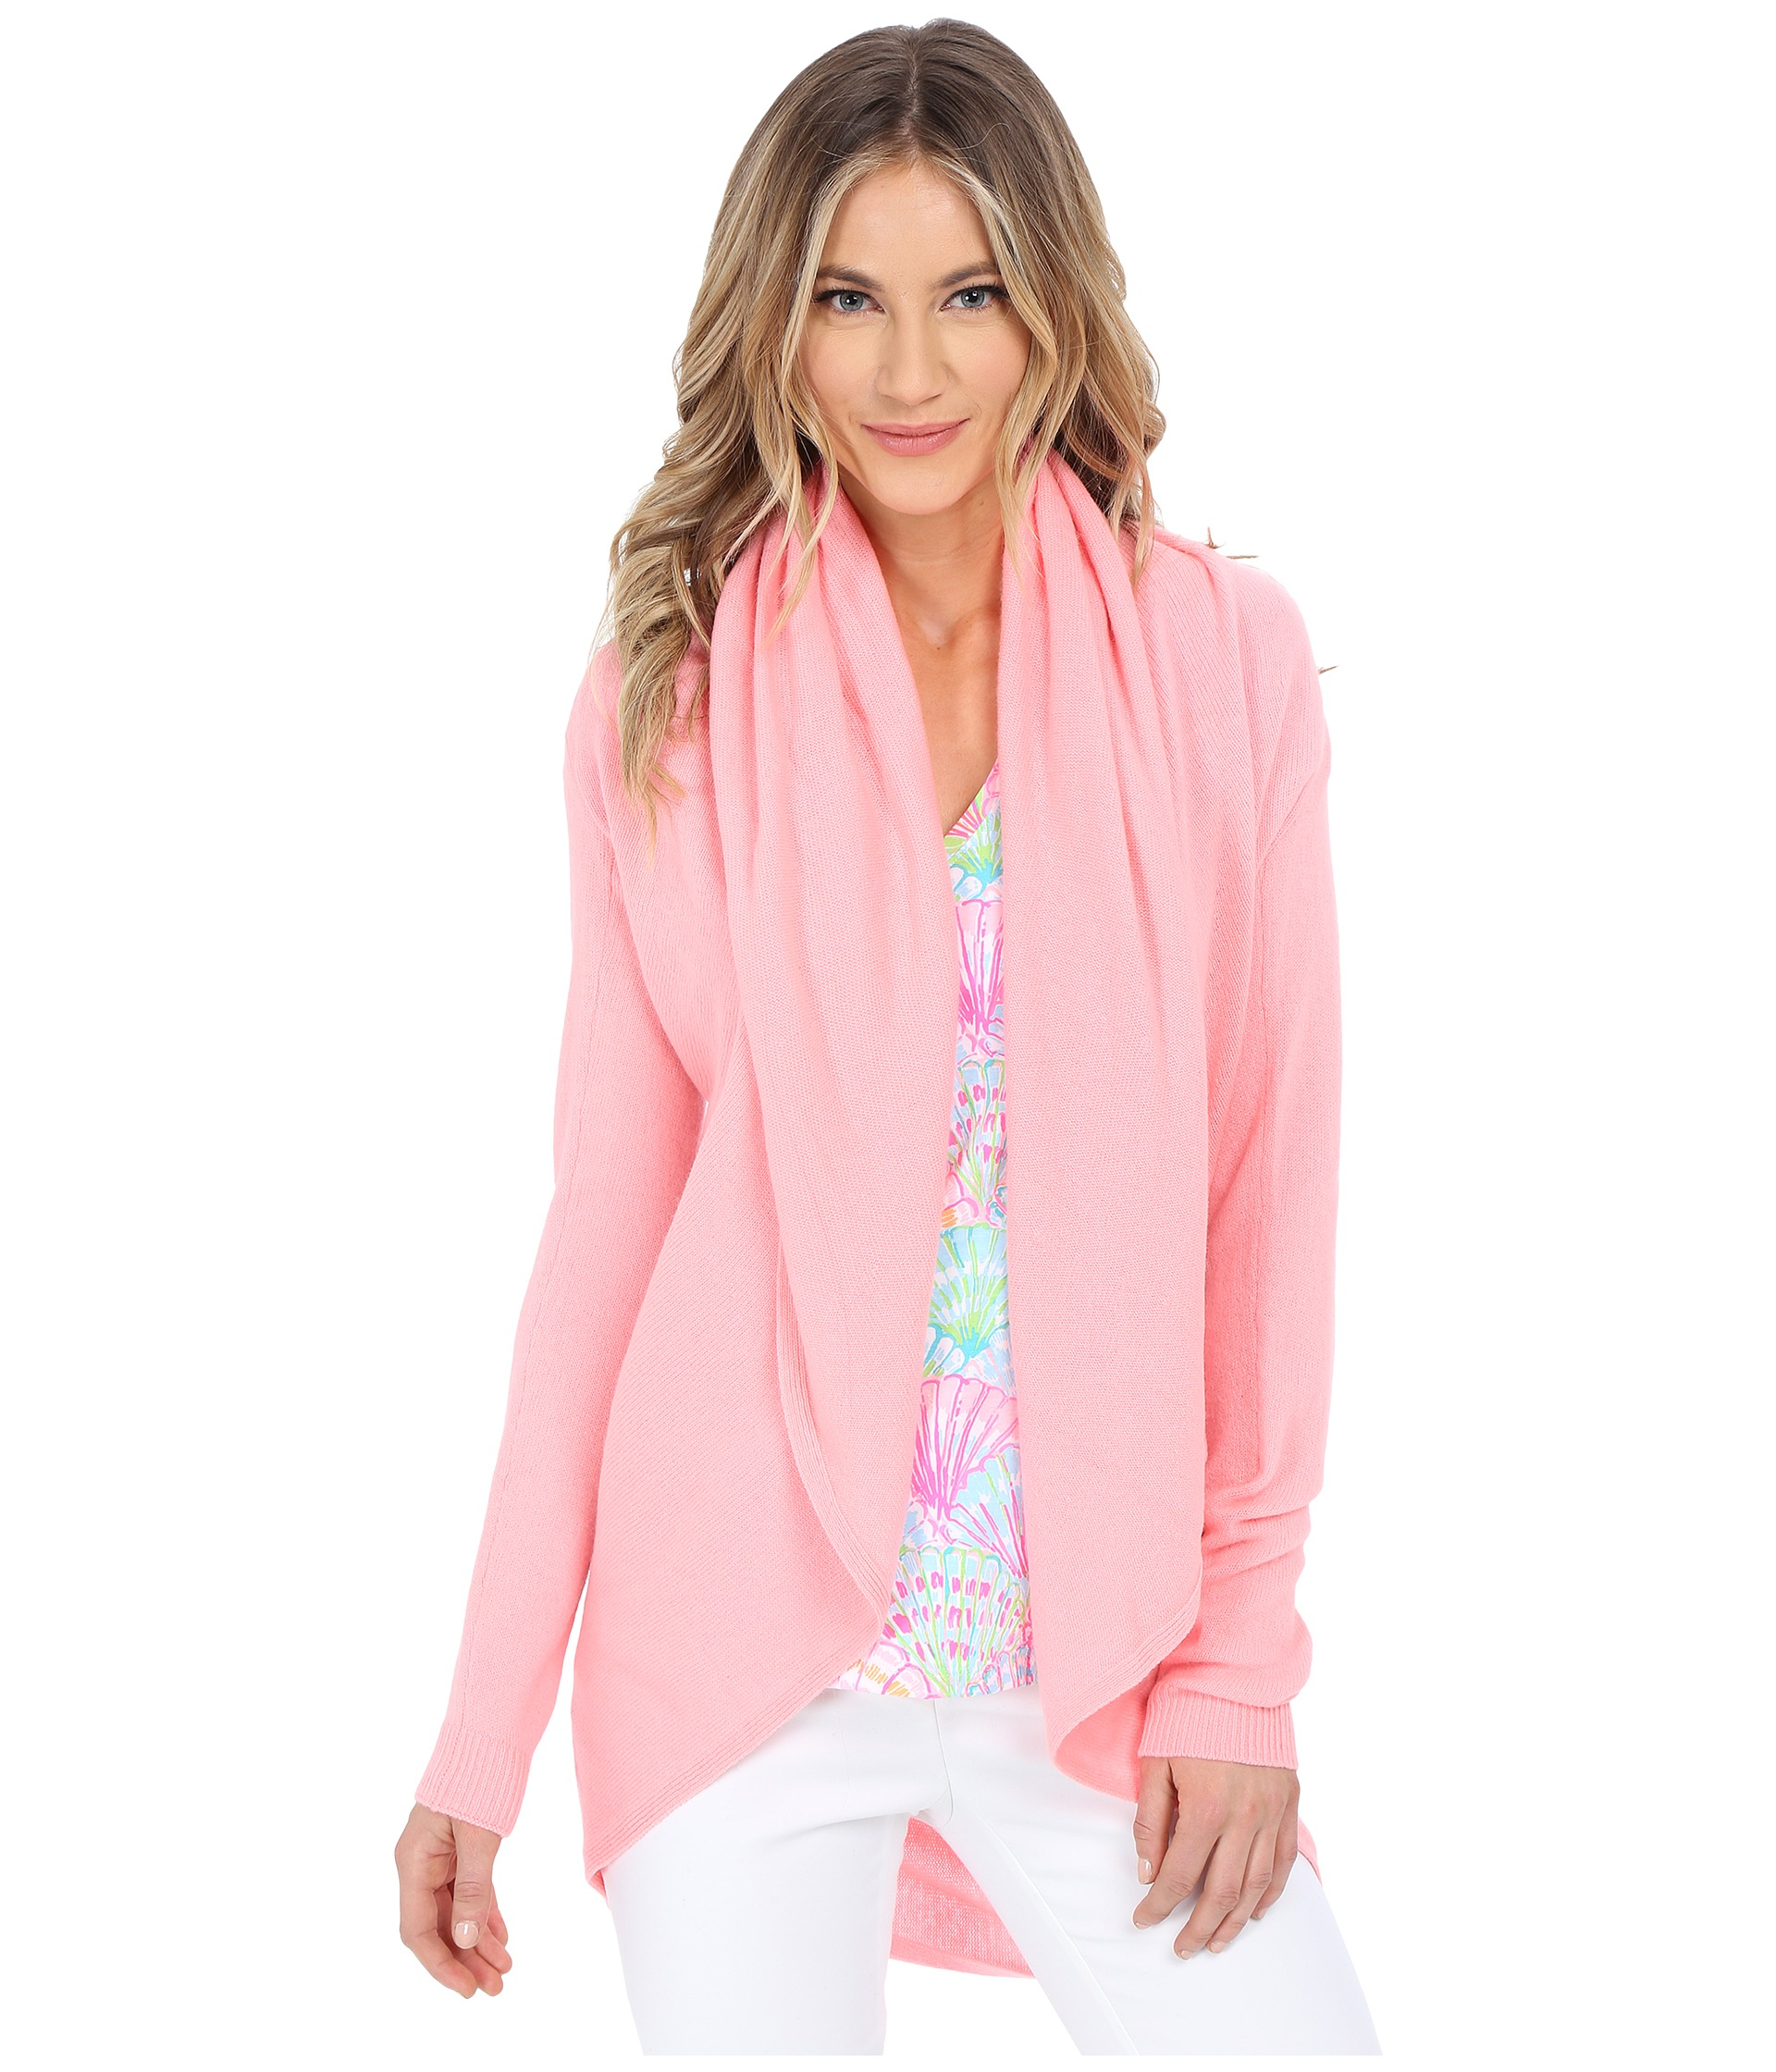 Lyst - Lilly Pulitzer Hayden Cashmere Cardigan in Pink ea31a7031